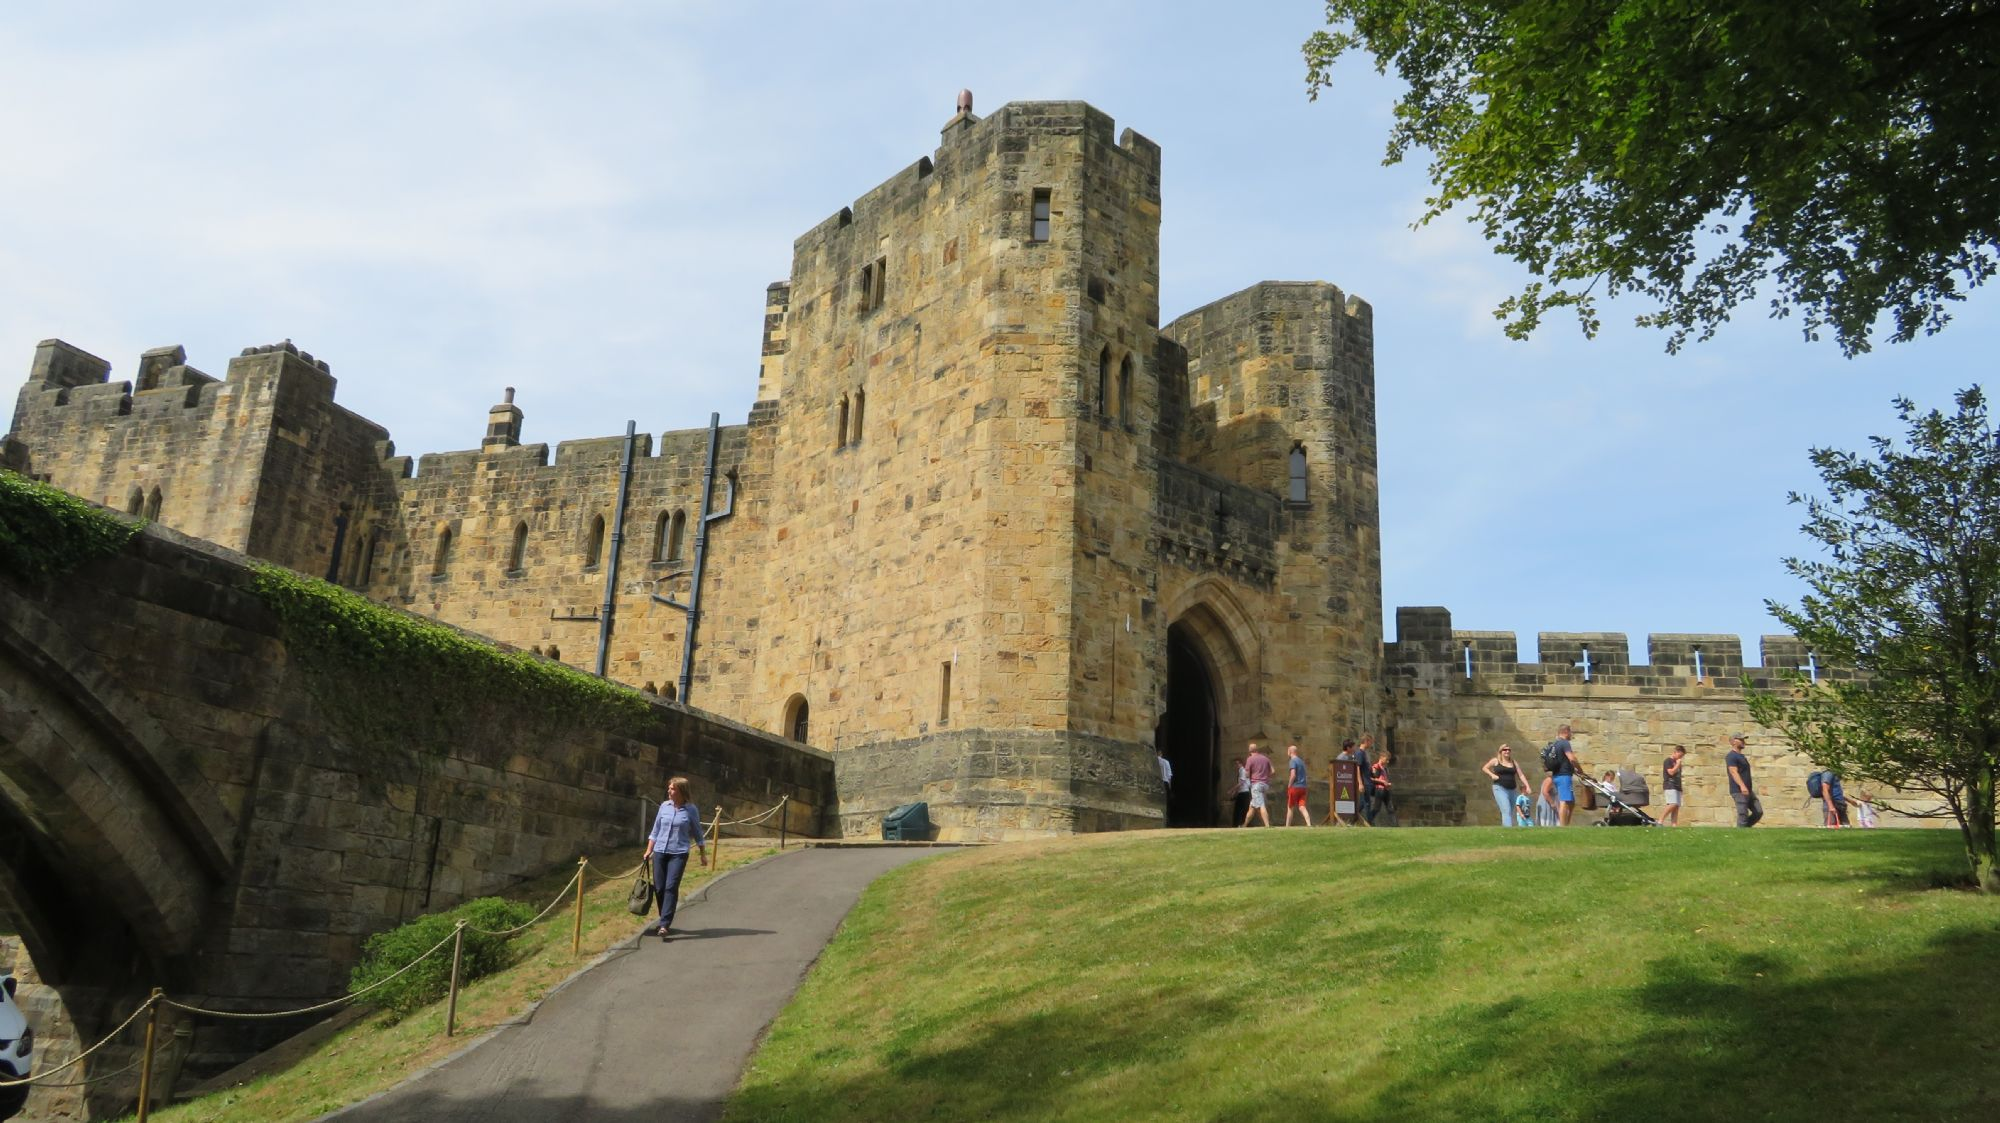 The Entrance to the Castle ...